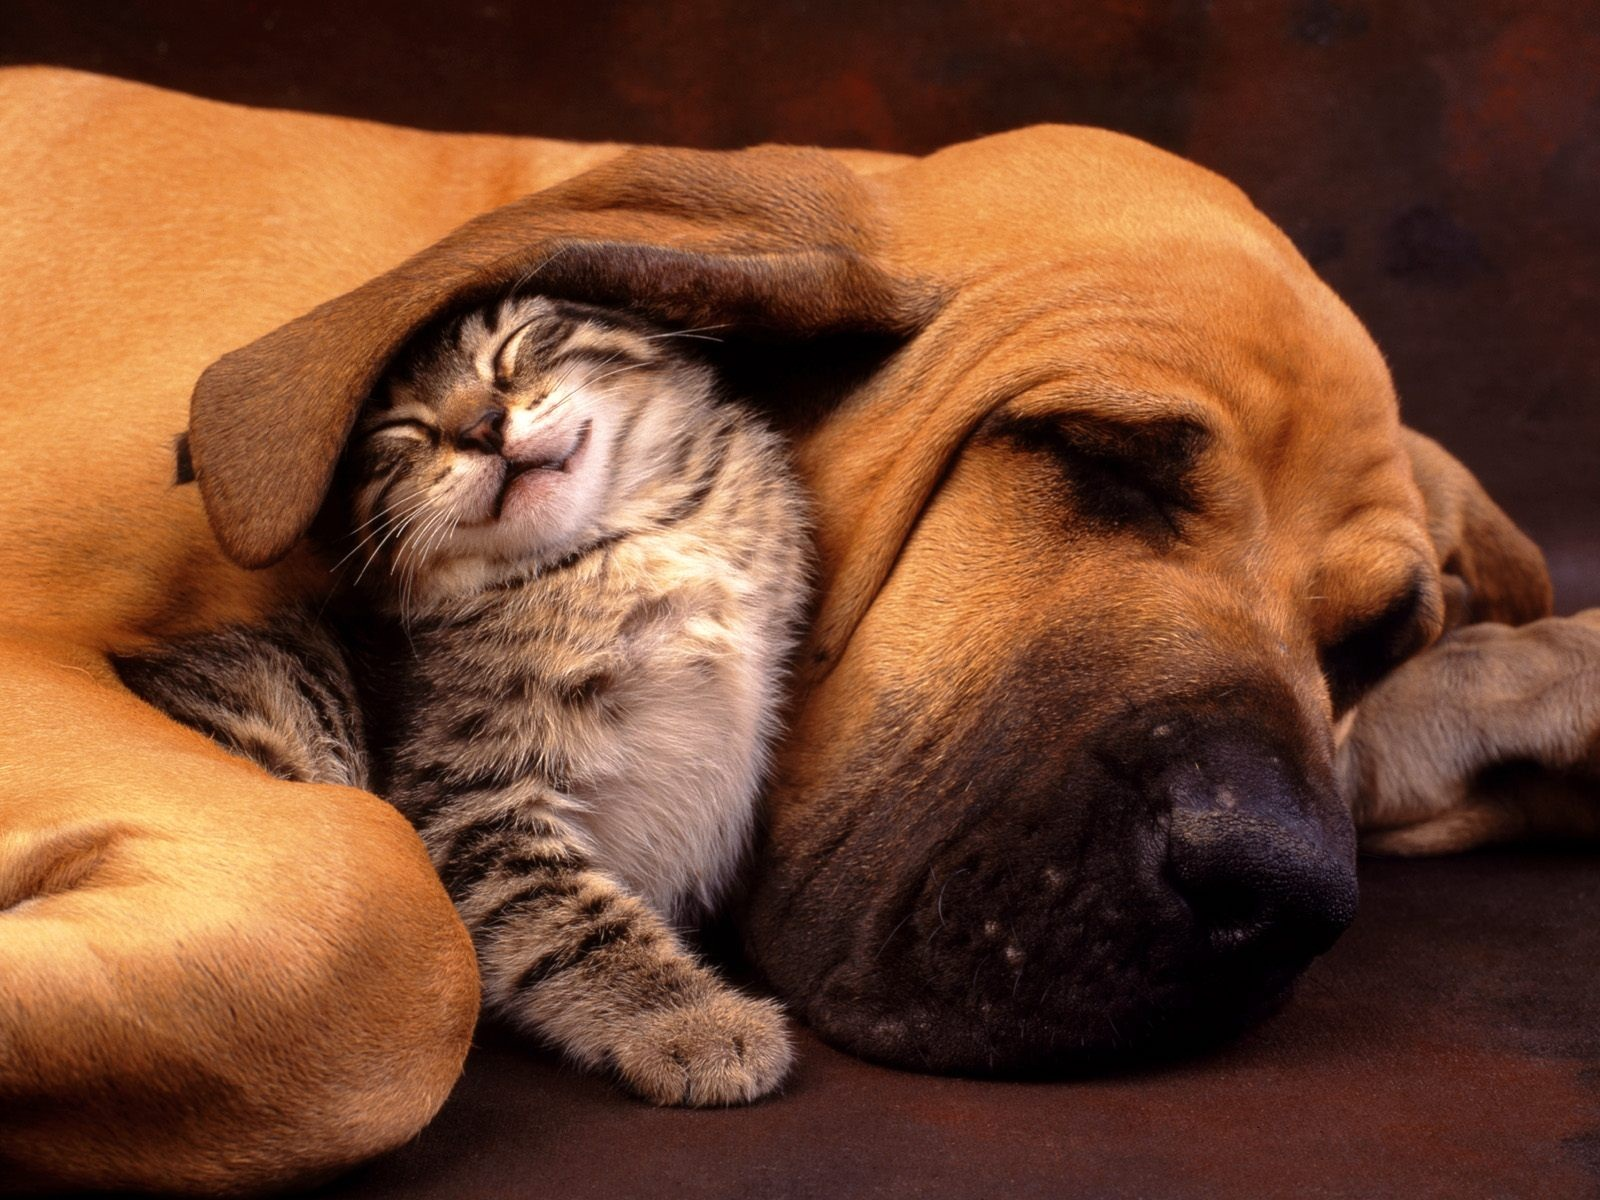 dog cat awesome wallpaper HD Wallpapers Rocks 1600x1200